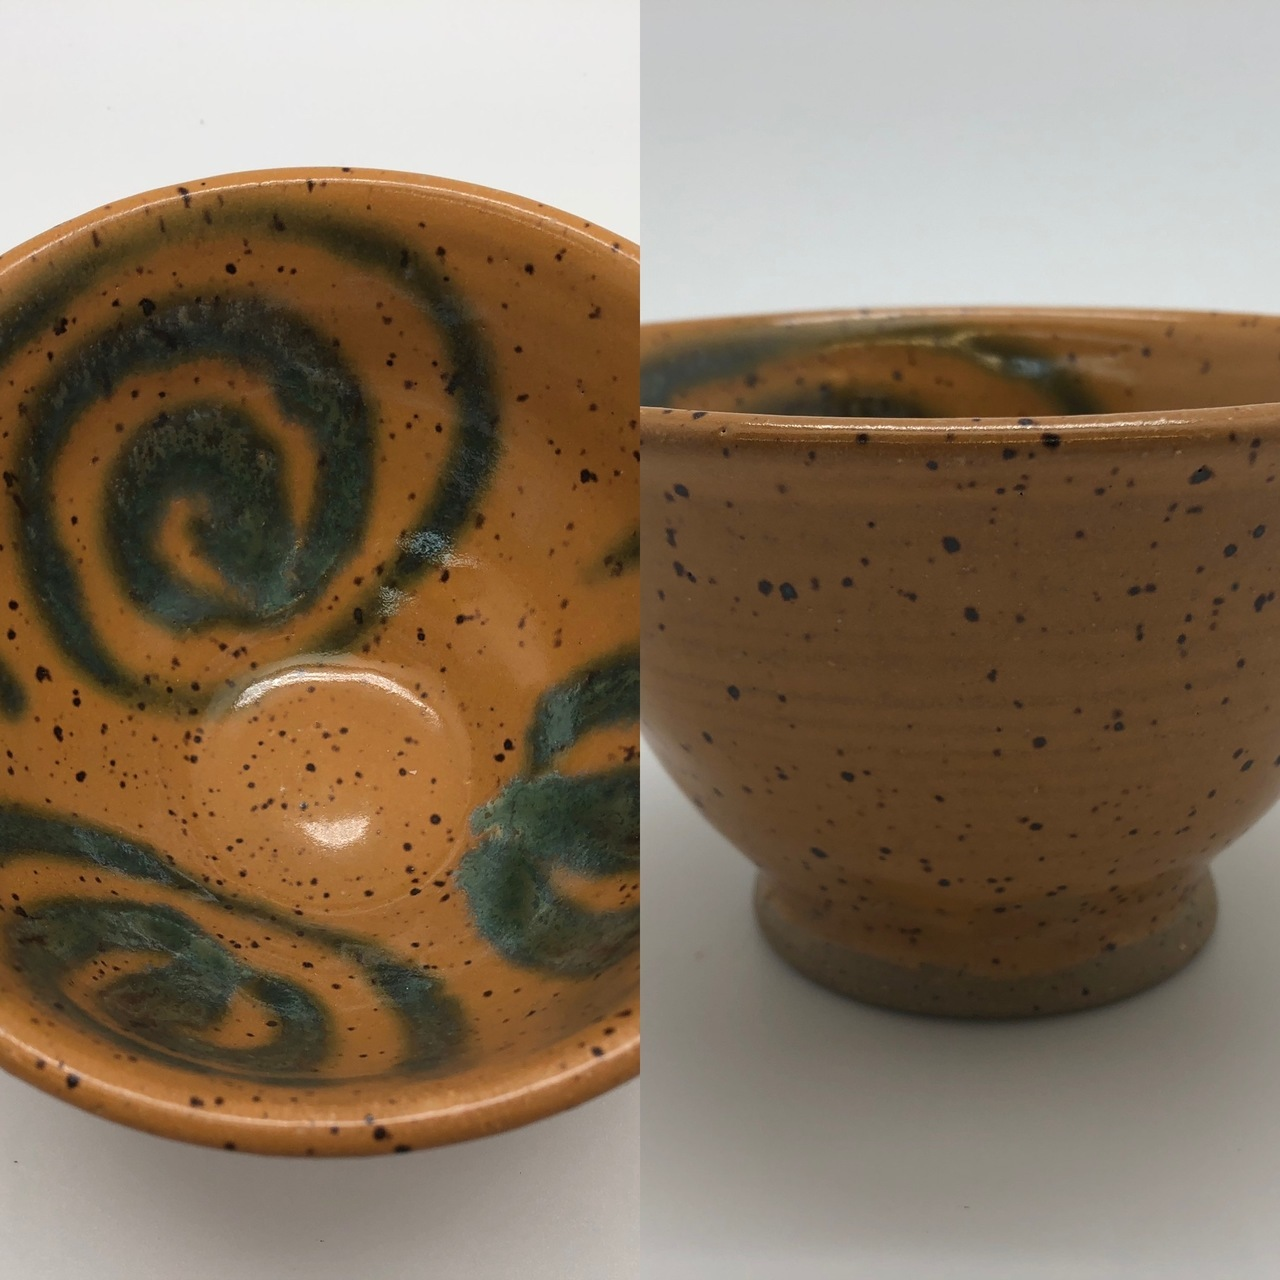 Mustard Speckled Bowl with Green Swirl